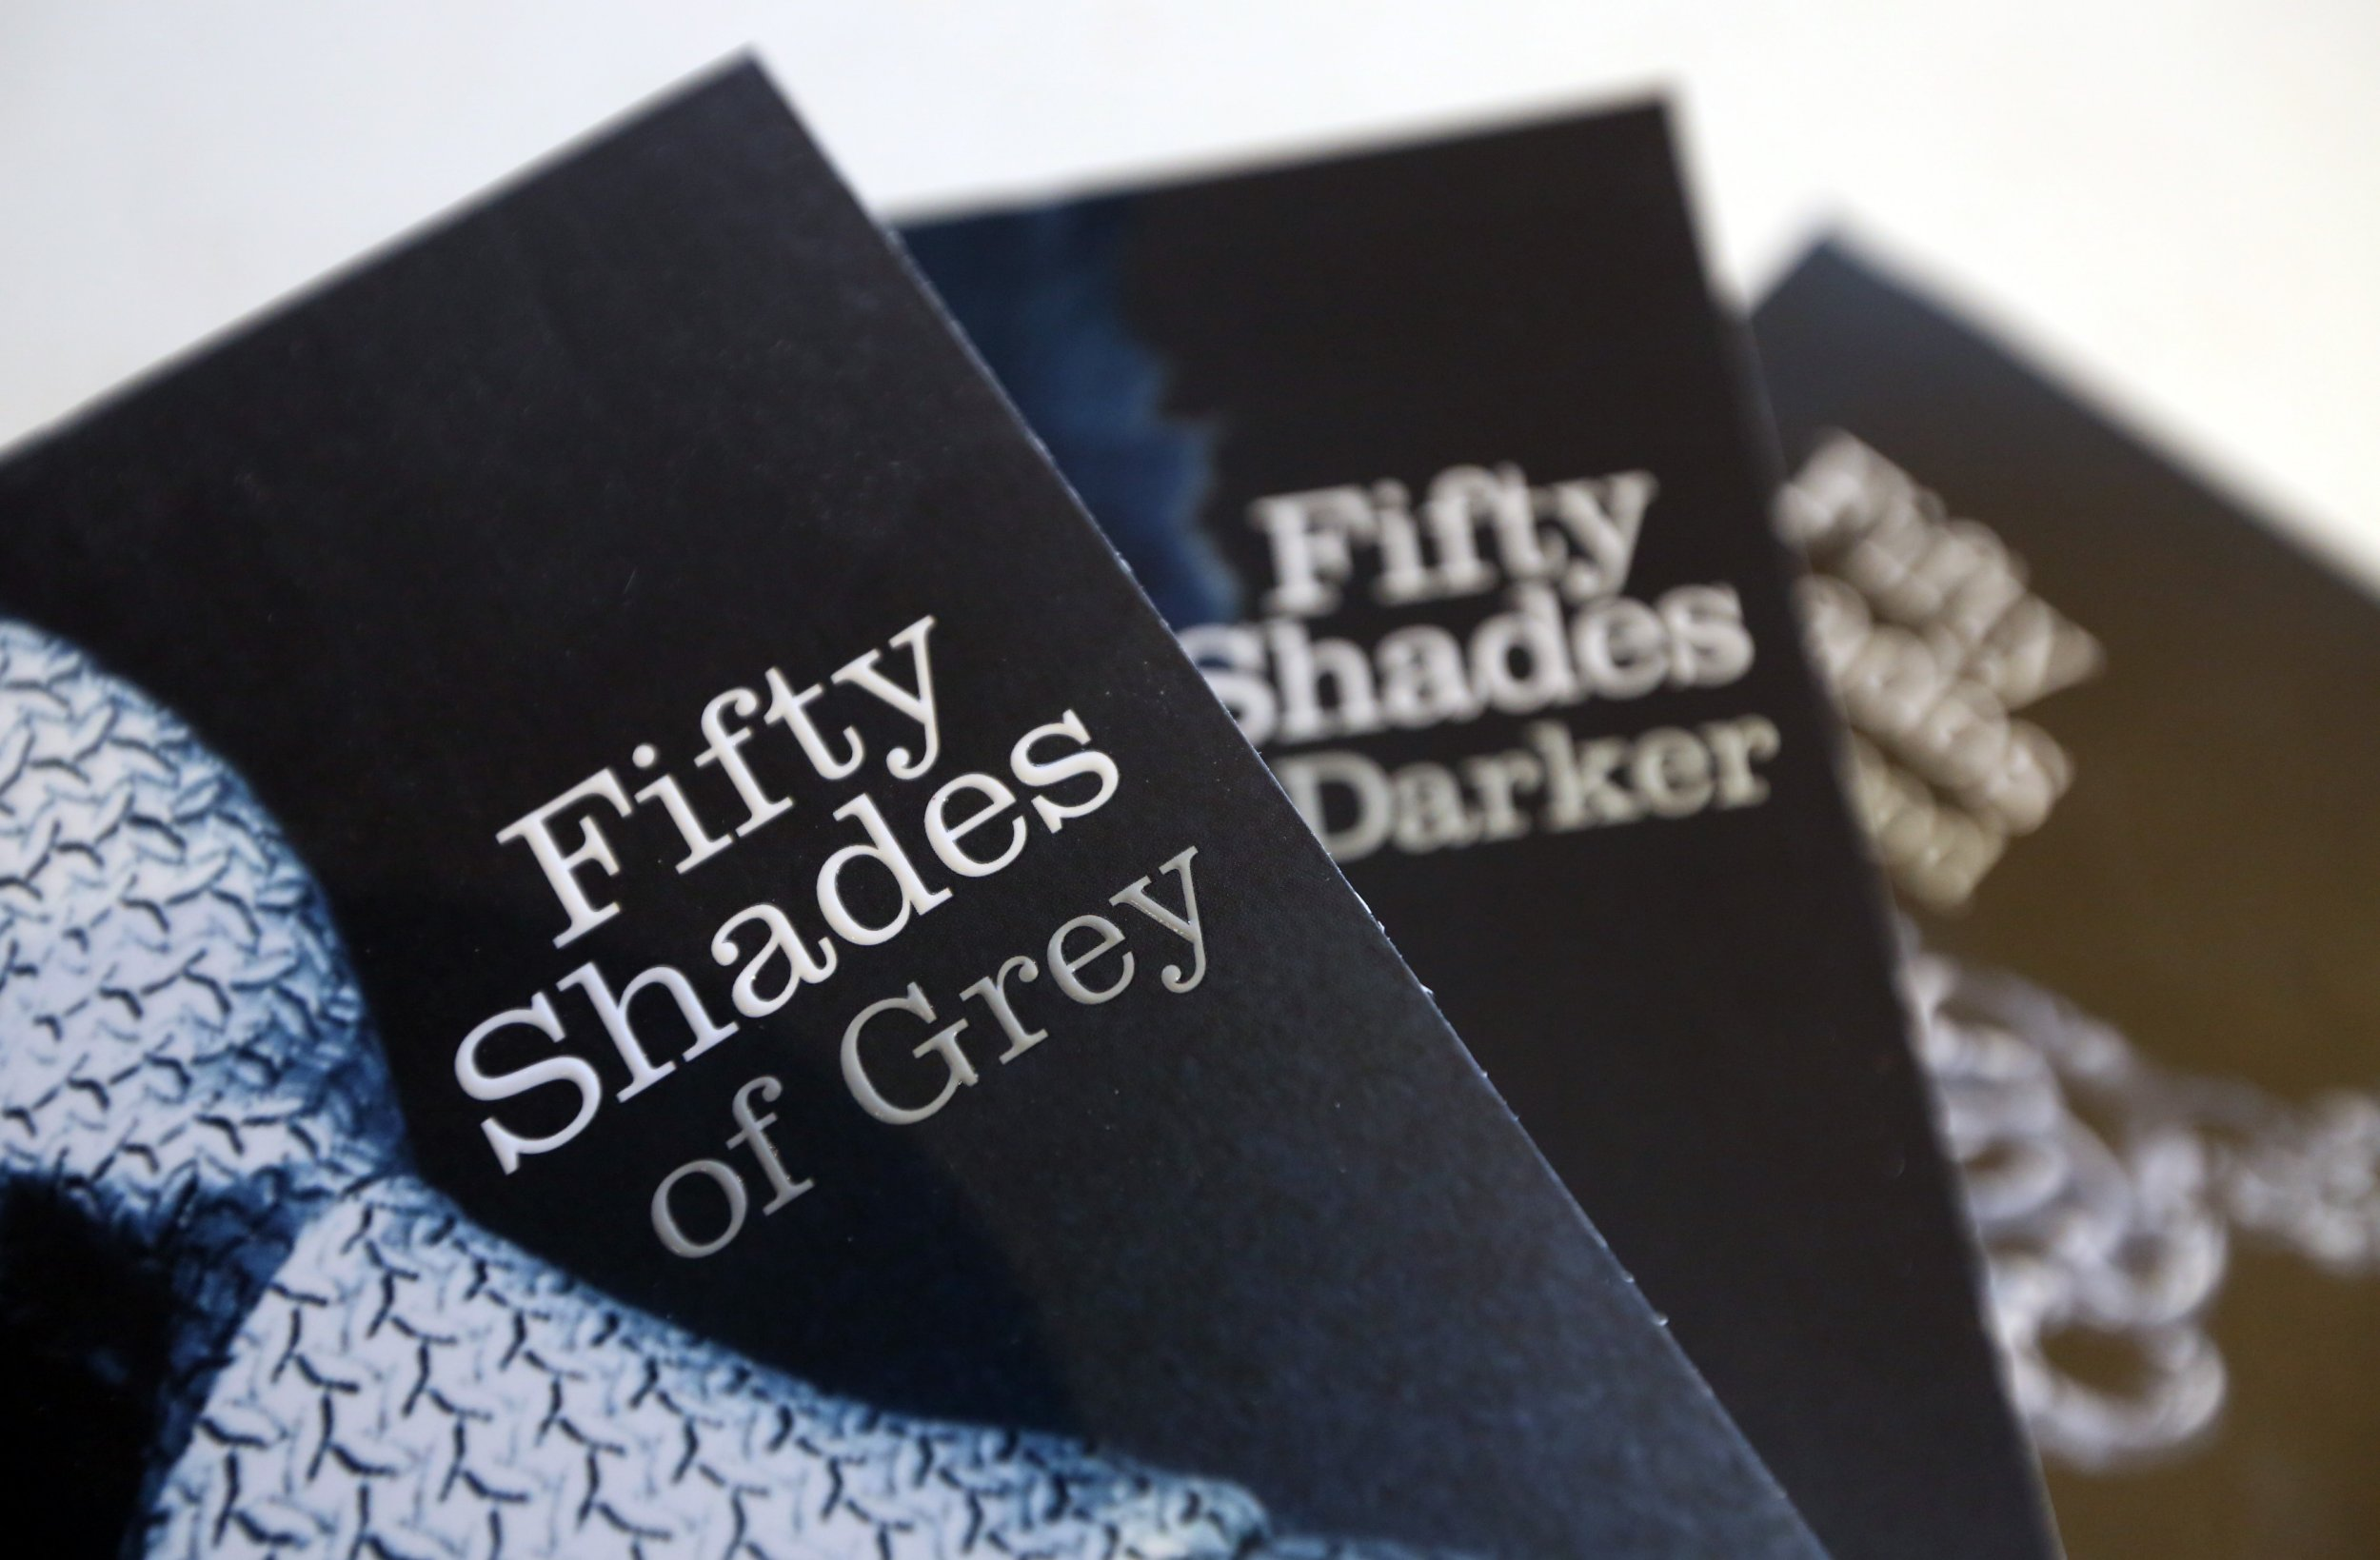 """Paperback editions of the """"Fifty Shades"""" trilogy by E.L. James, published by the Arrow, are arranged for a photograph at the U.K. headquarters of Random House in London, U.K., on Friday, April 5, 2013. Bertelsmann SE's Random House won European Union approval to buy Pearson Plc's Penguin unit to create the largest book publisher in the U.K. and the U.S. Photographer: Chris Ratcliffe/Bloomberg via Getty Images"""